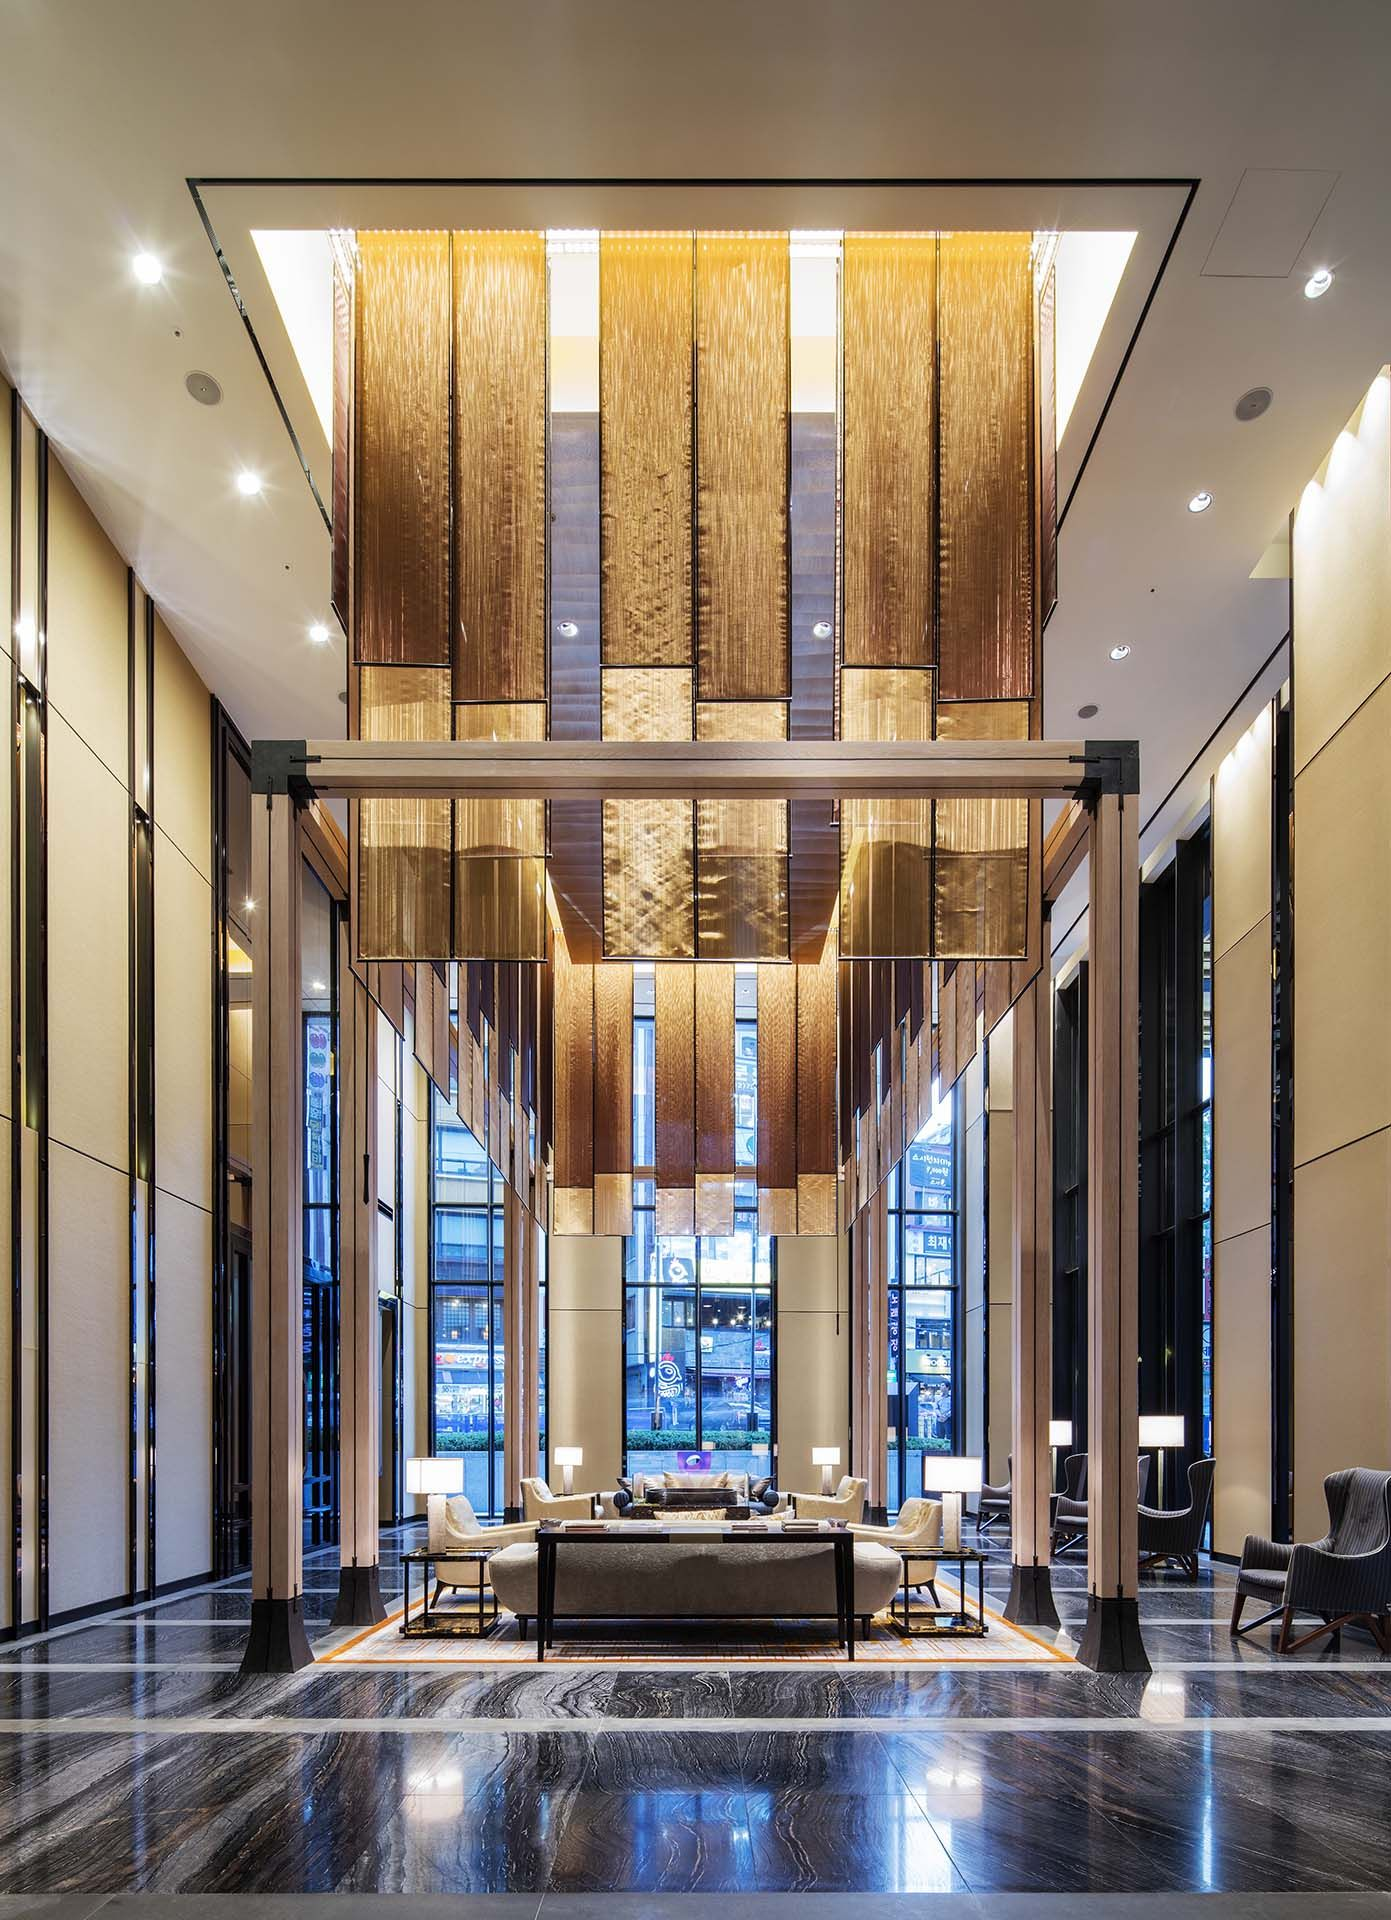 Home Lobby Interior Design Royalty Free Stock Photos: Pin By Littlechan Chan On THE LOBBY In 2019